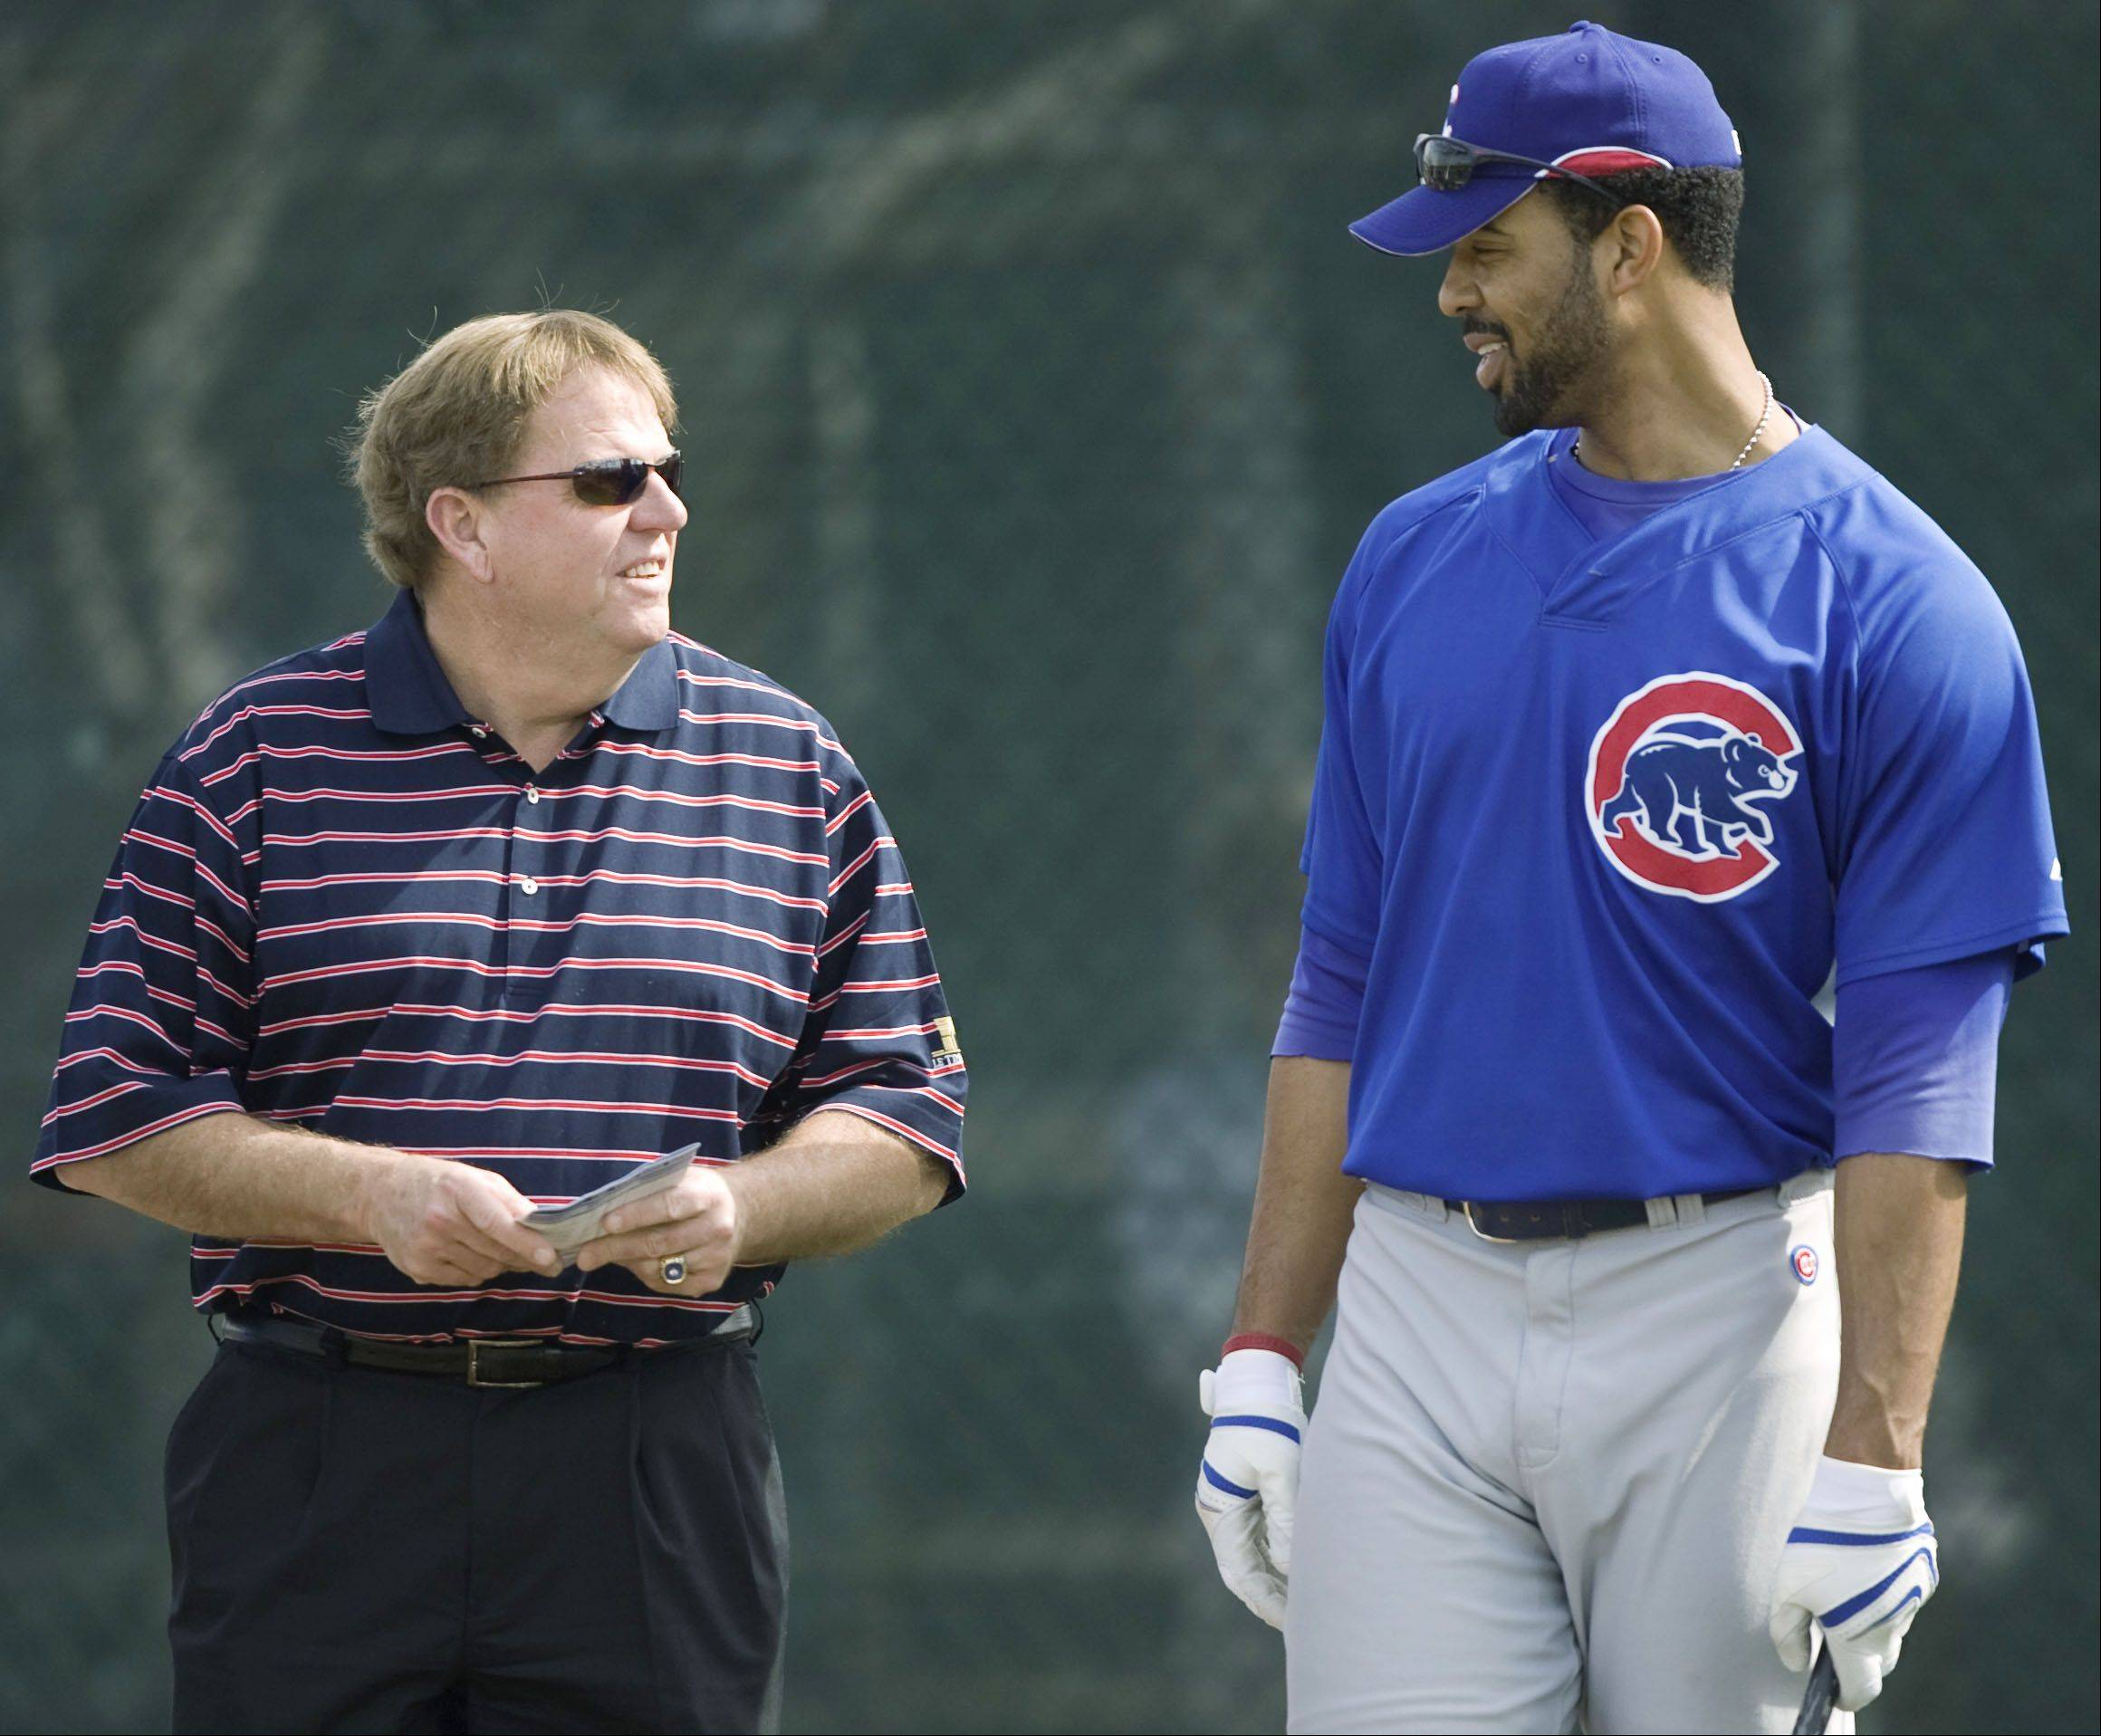 Associated PressChicago Cubs' Derrek Lee, right, talks to general manager Jim Hendry at baseball spring training on Tuesday, Feb. 19, 2008, in Mesa, Ariz.